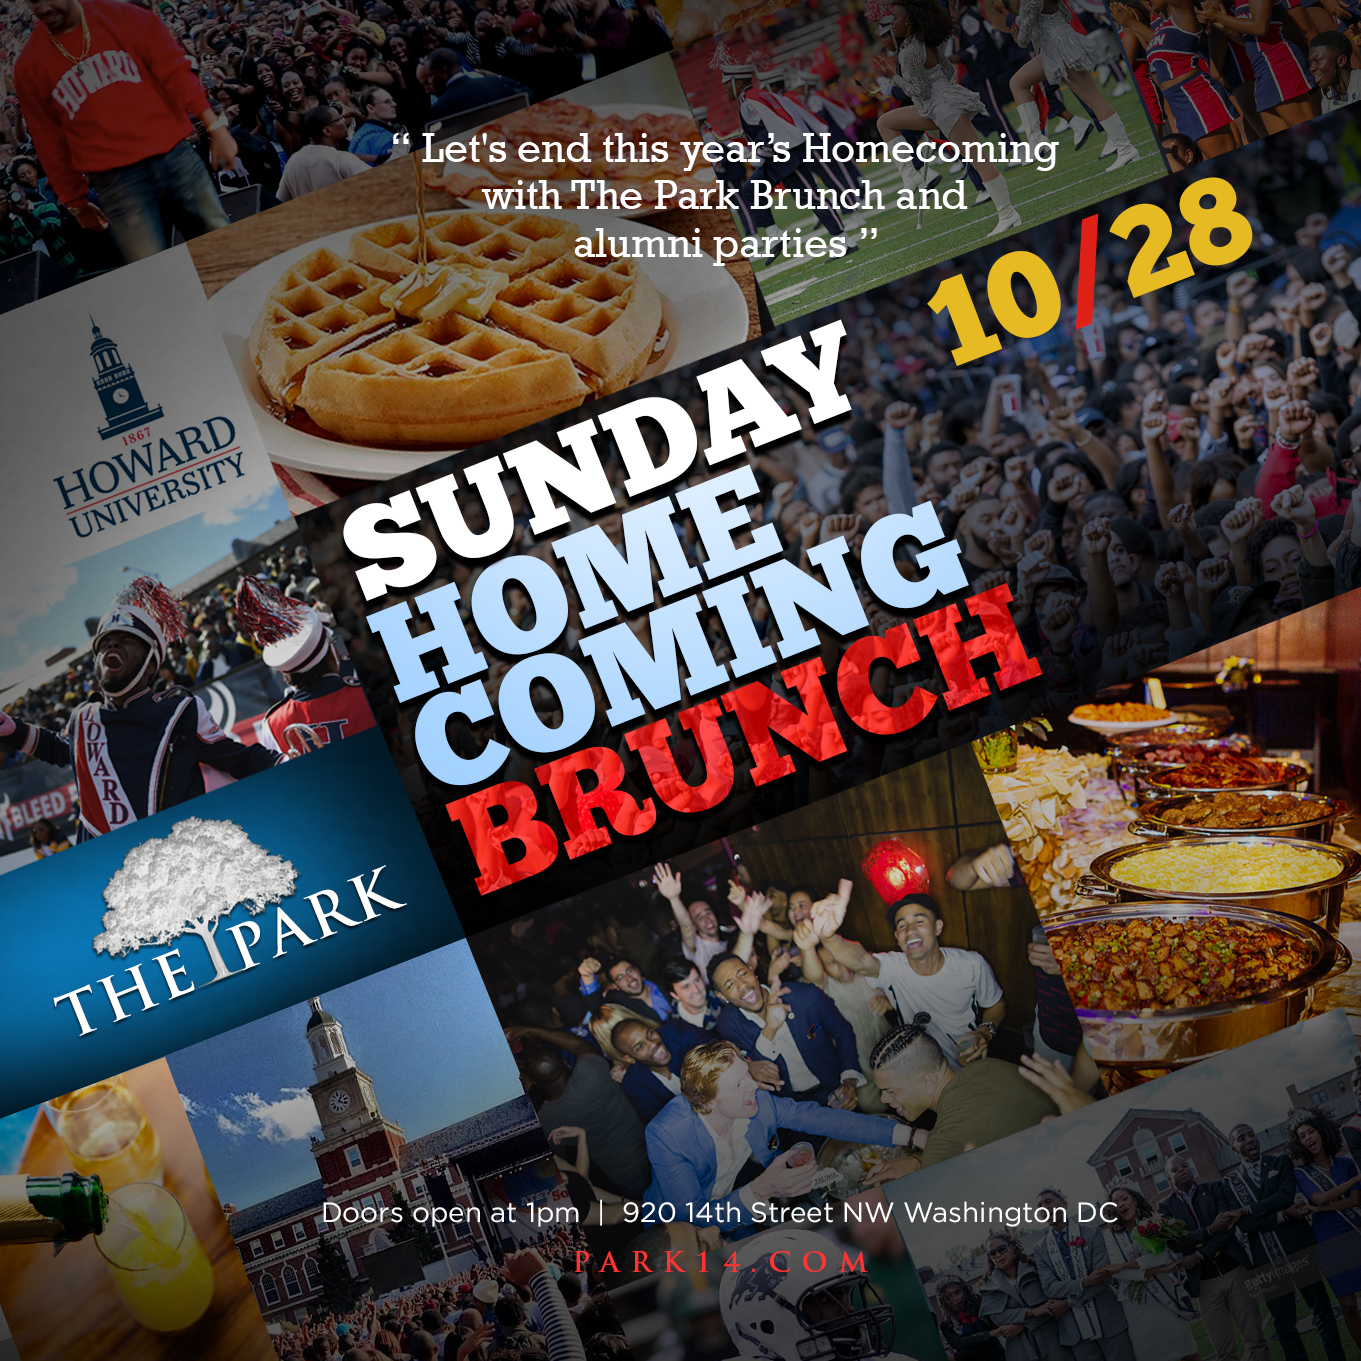 HUHomecoming Brunch flyer v5.jpg